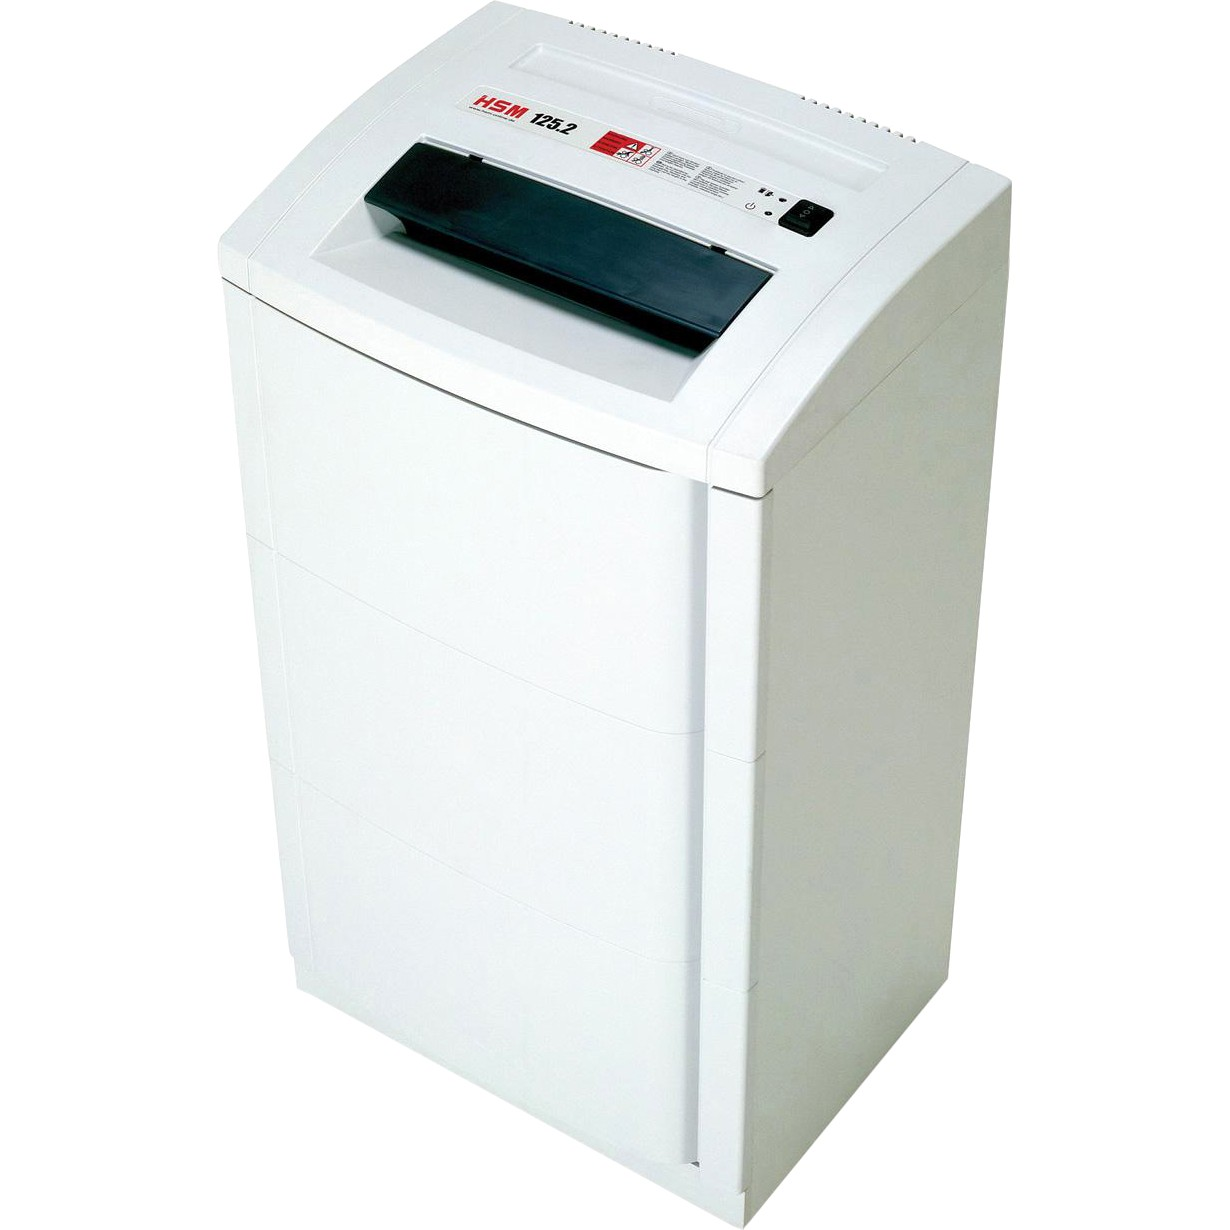 HSM15624 HSM Classic 125.2 High Security Level 6 Cross-Cut Shredder